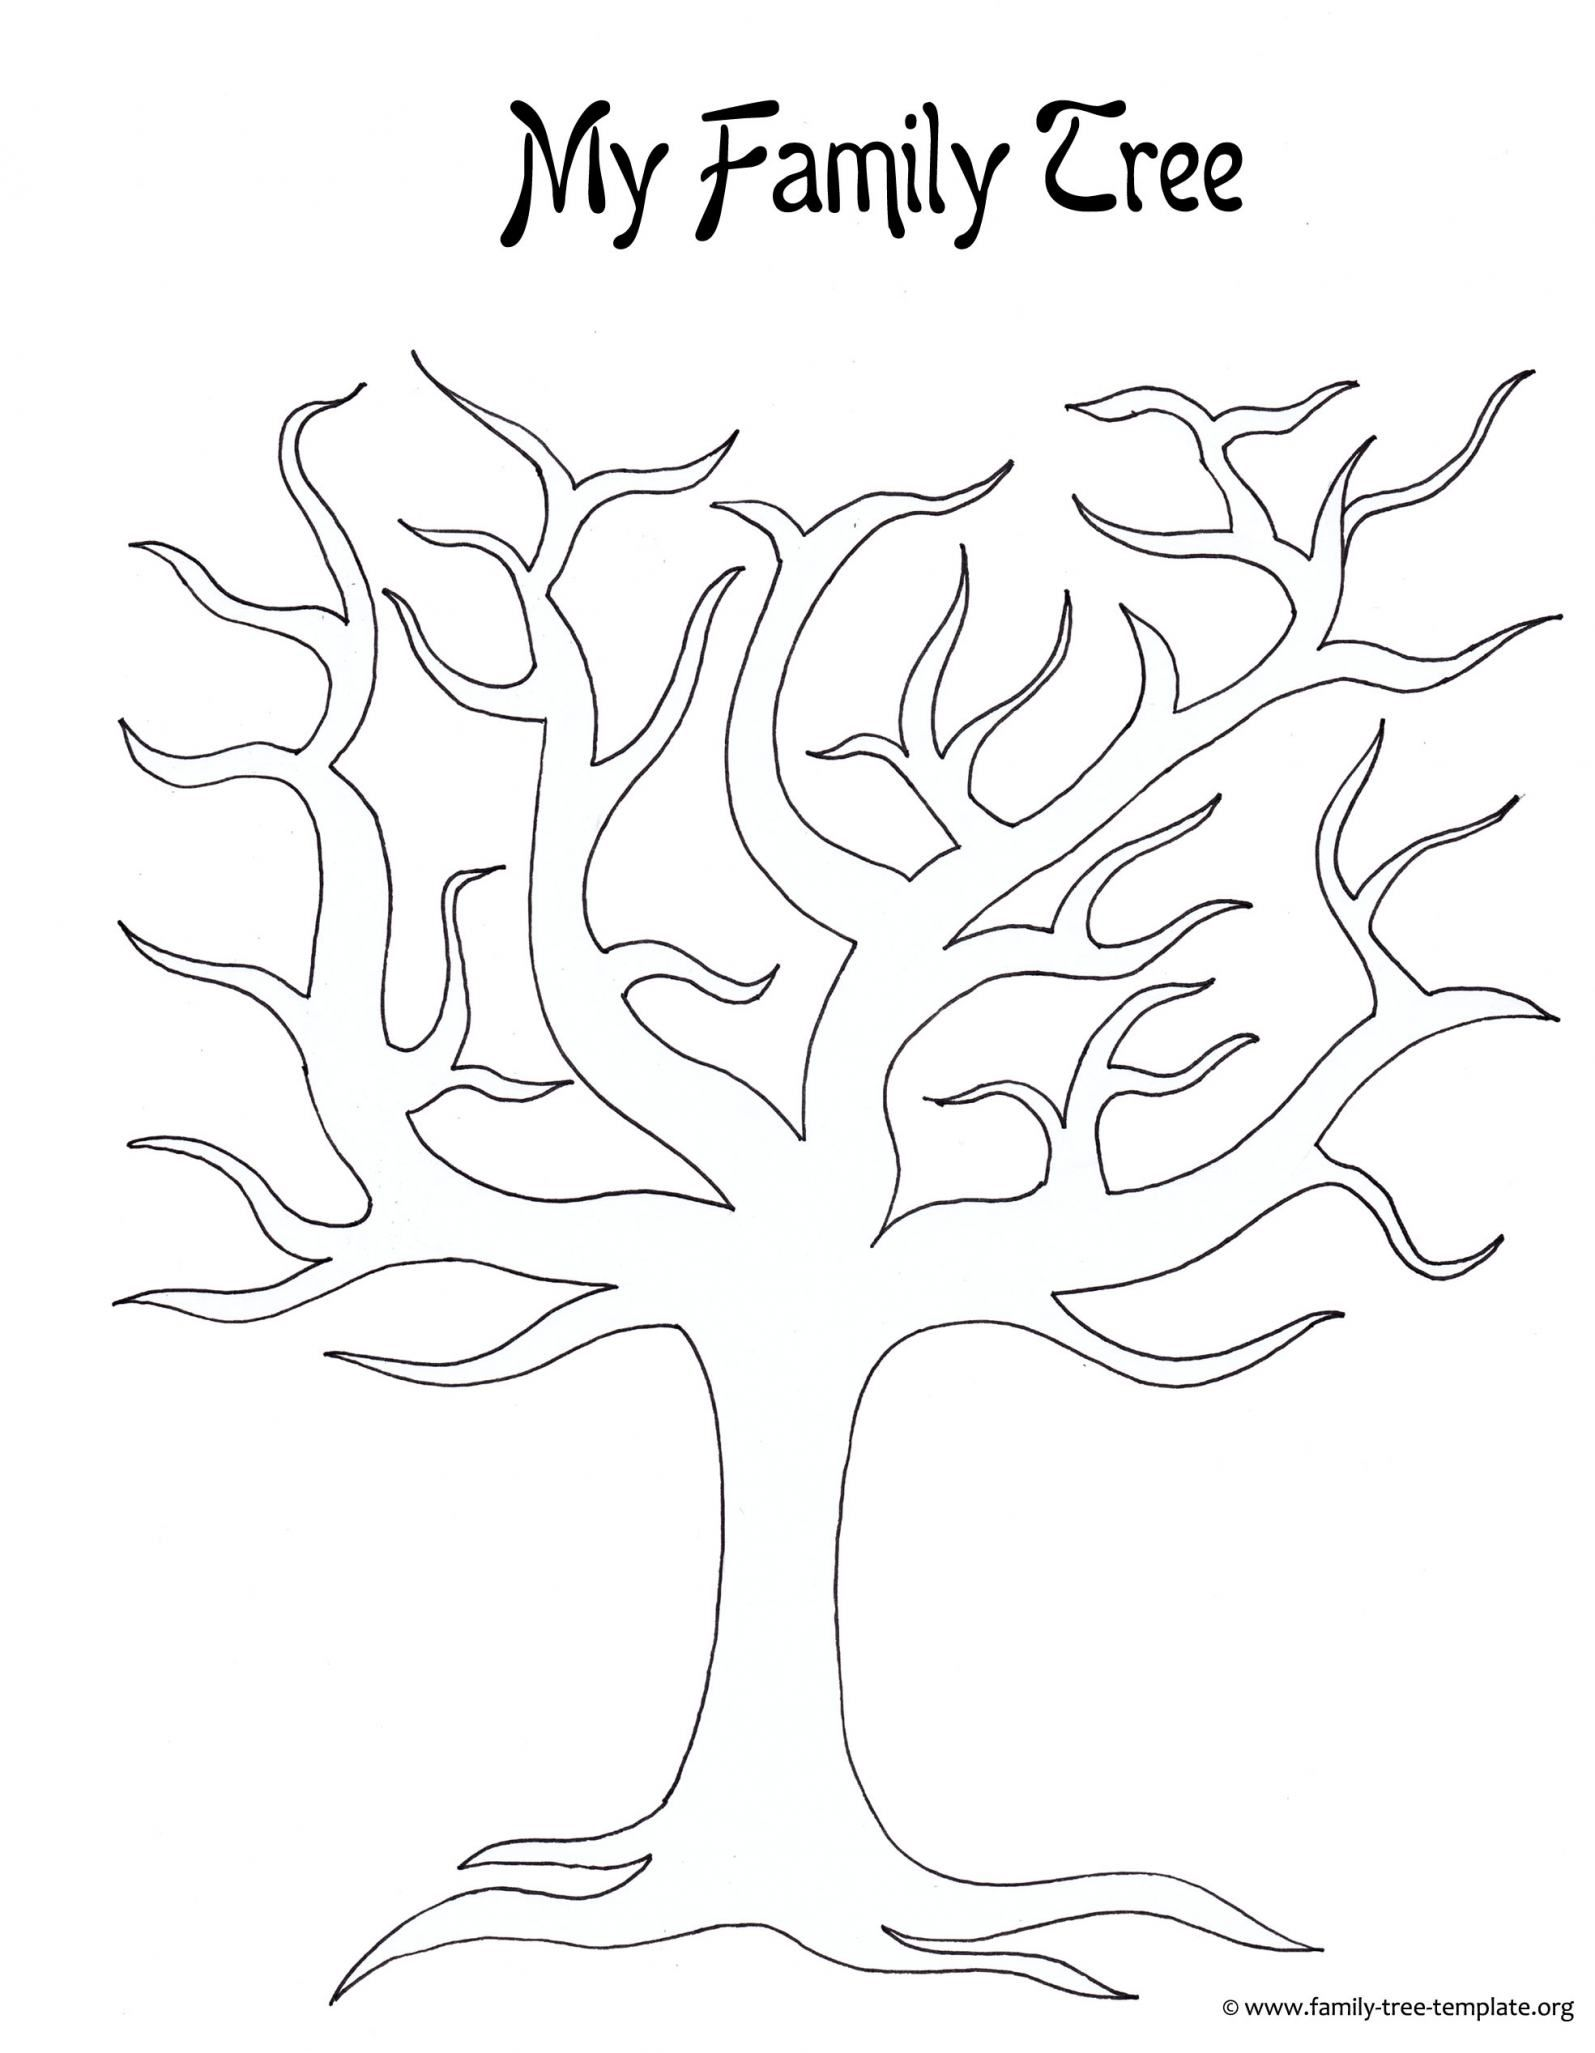 Drawing a family tree template make a family tree easily with with family tree drawing template